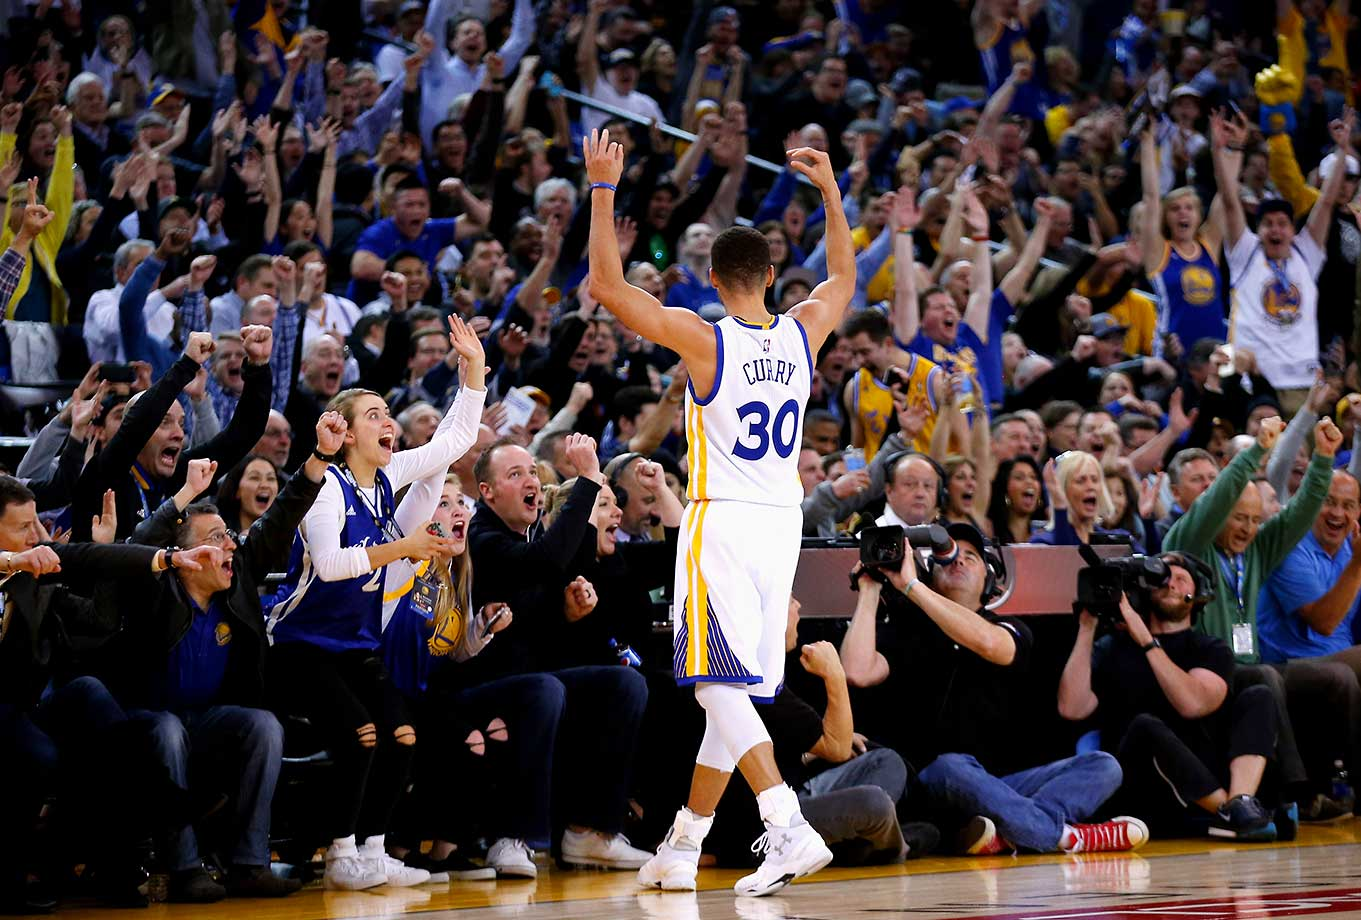 Stephen Curry of the Golden State Warriors reacts after he made a half-court shot to end the first half of their game against the Indiana Pacers at ORACLE Arena in Oakland.